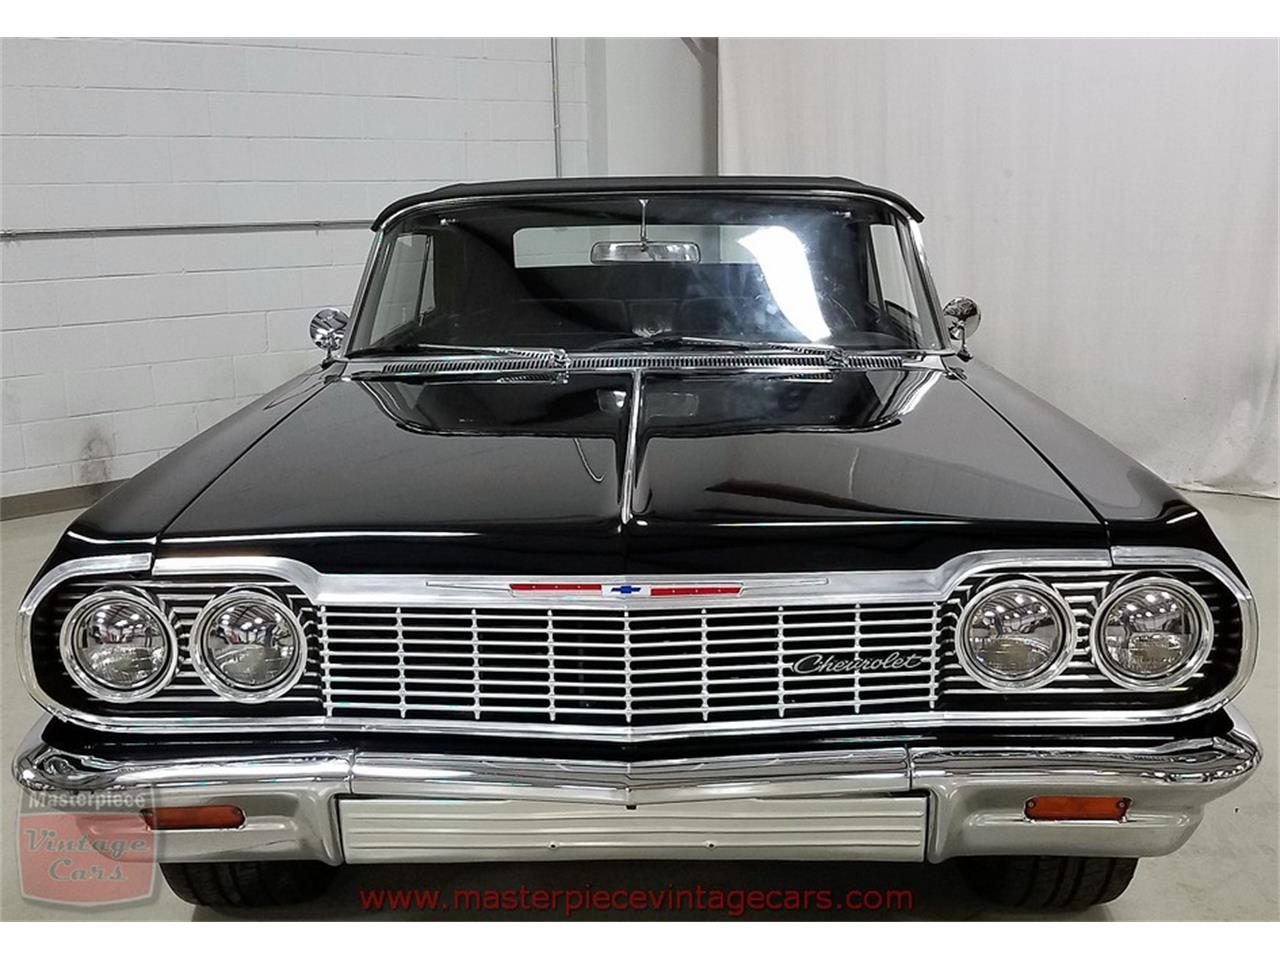 Large Picture of 1964 Chevrolet Impala - $44,900.00 Offered by Masterpiece Vintage Cars - LBXB